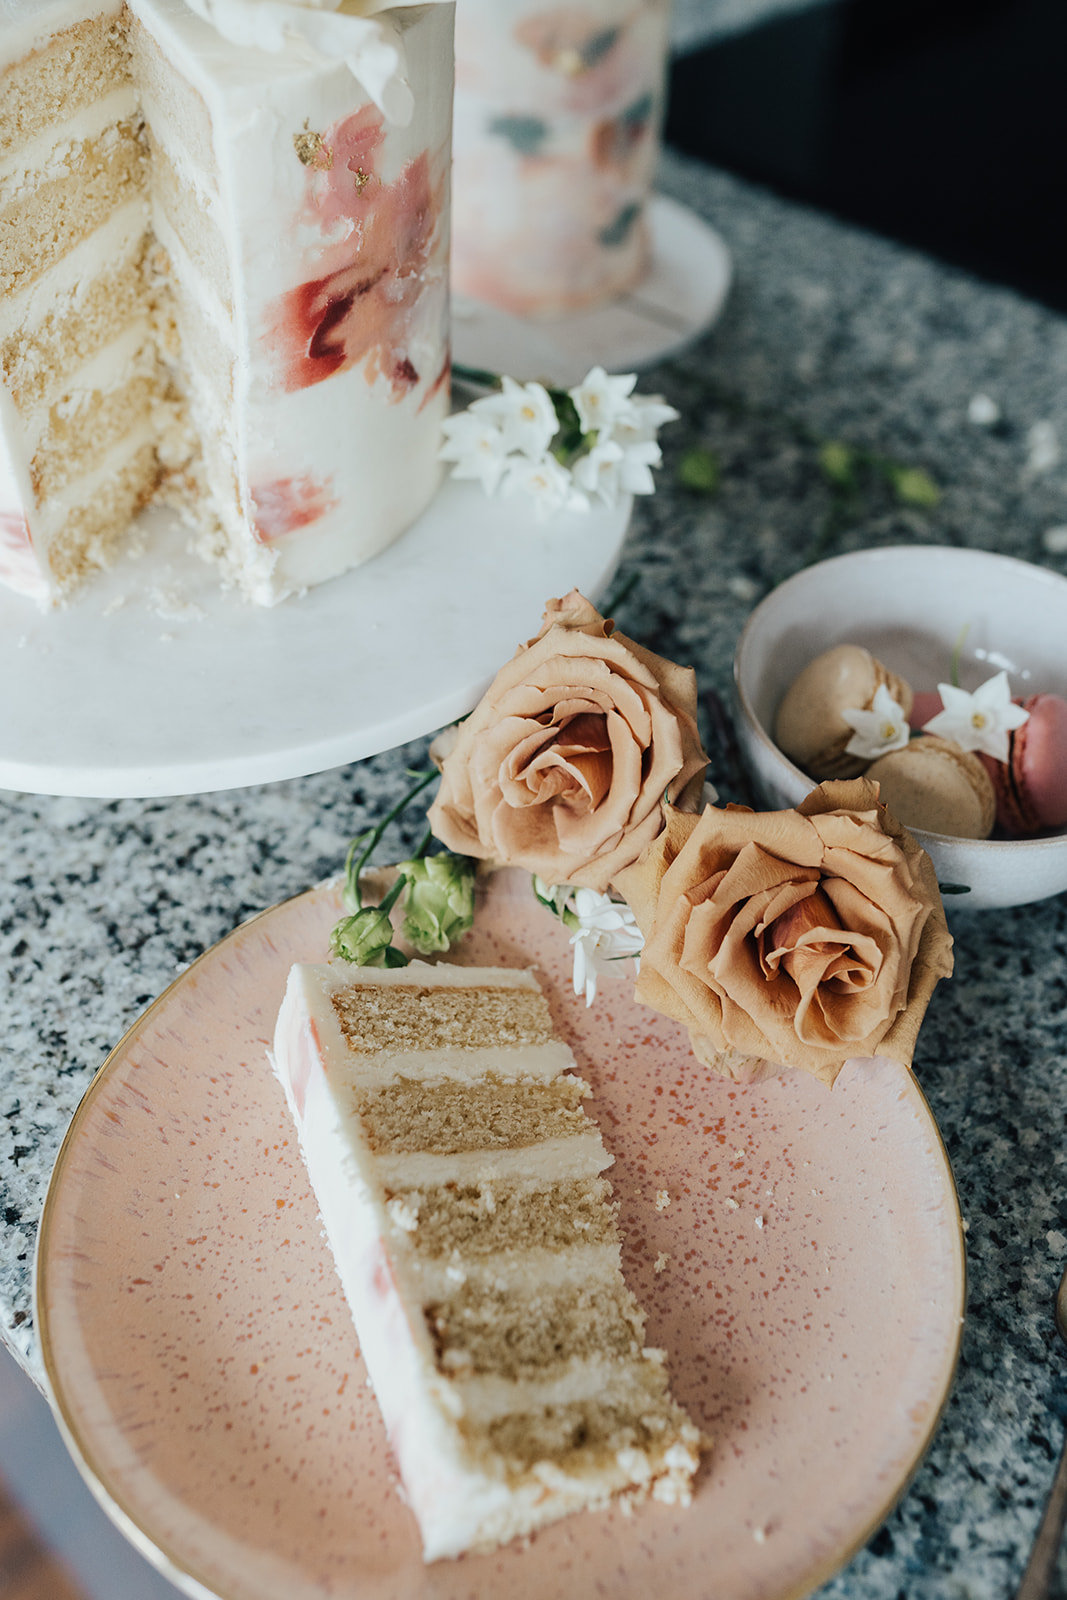 Slice of buttercream cake made with organic ingredients | Sugar Plum Bakes | Rebecca Carpenter Photography